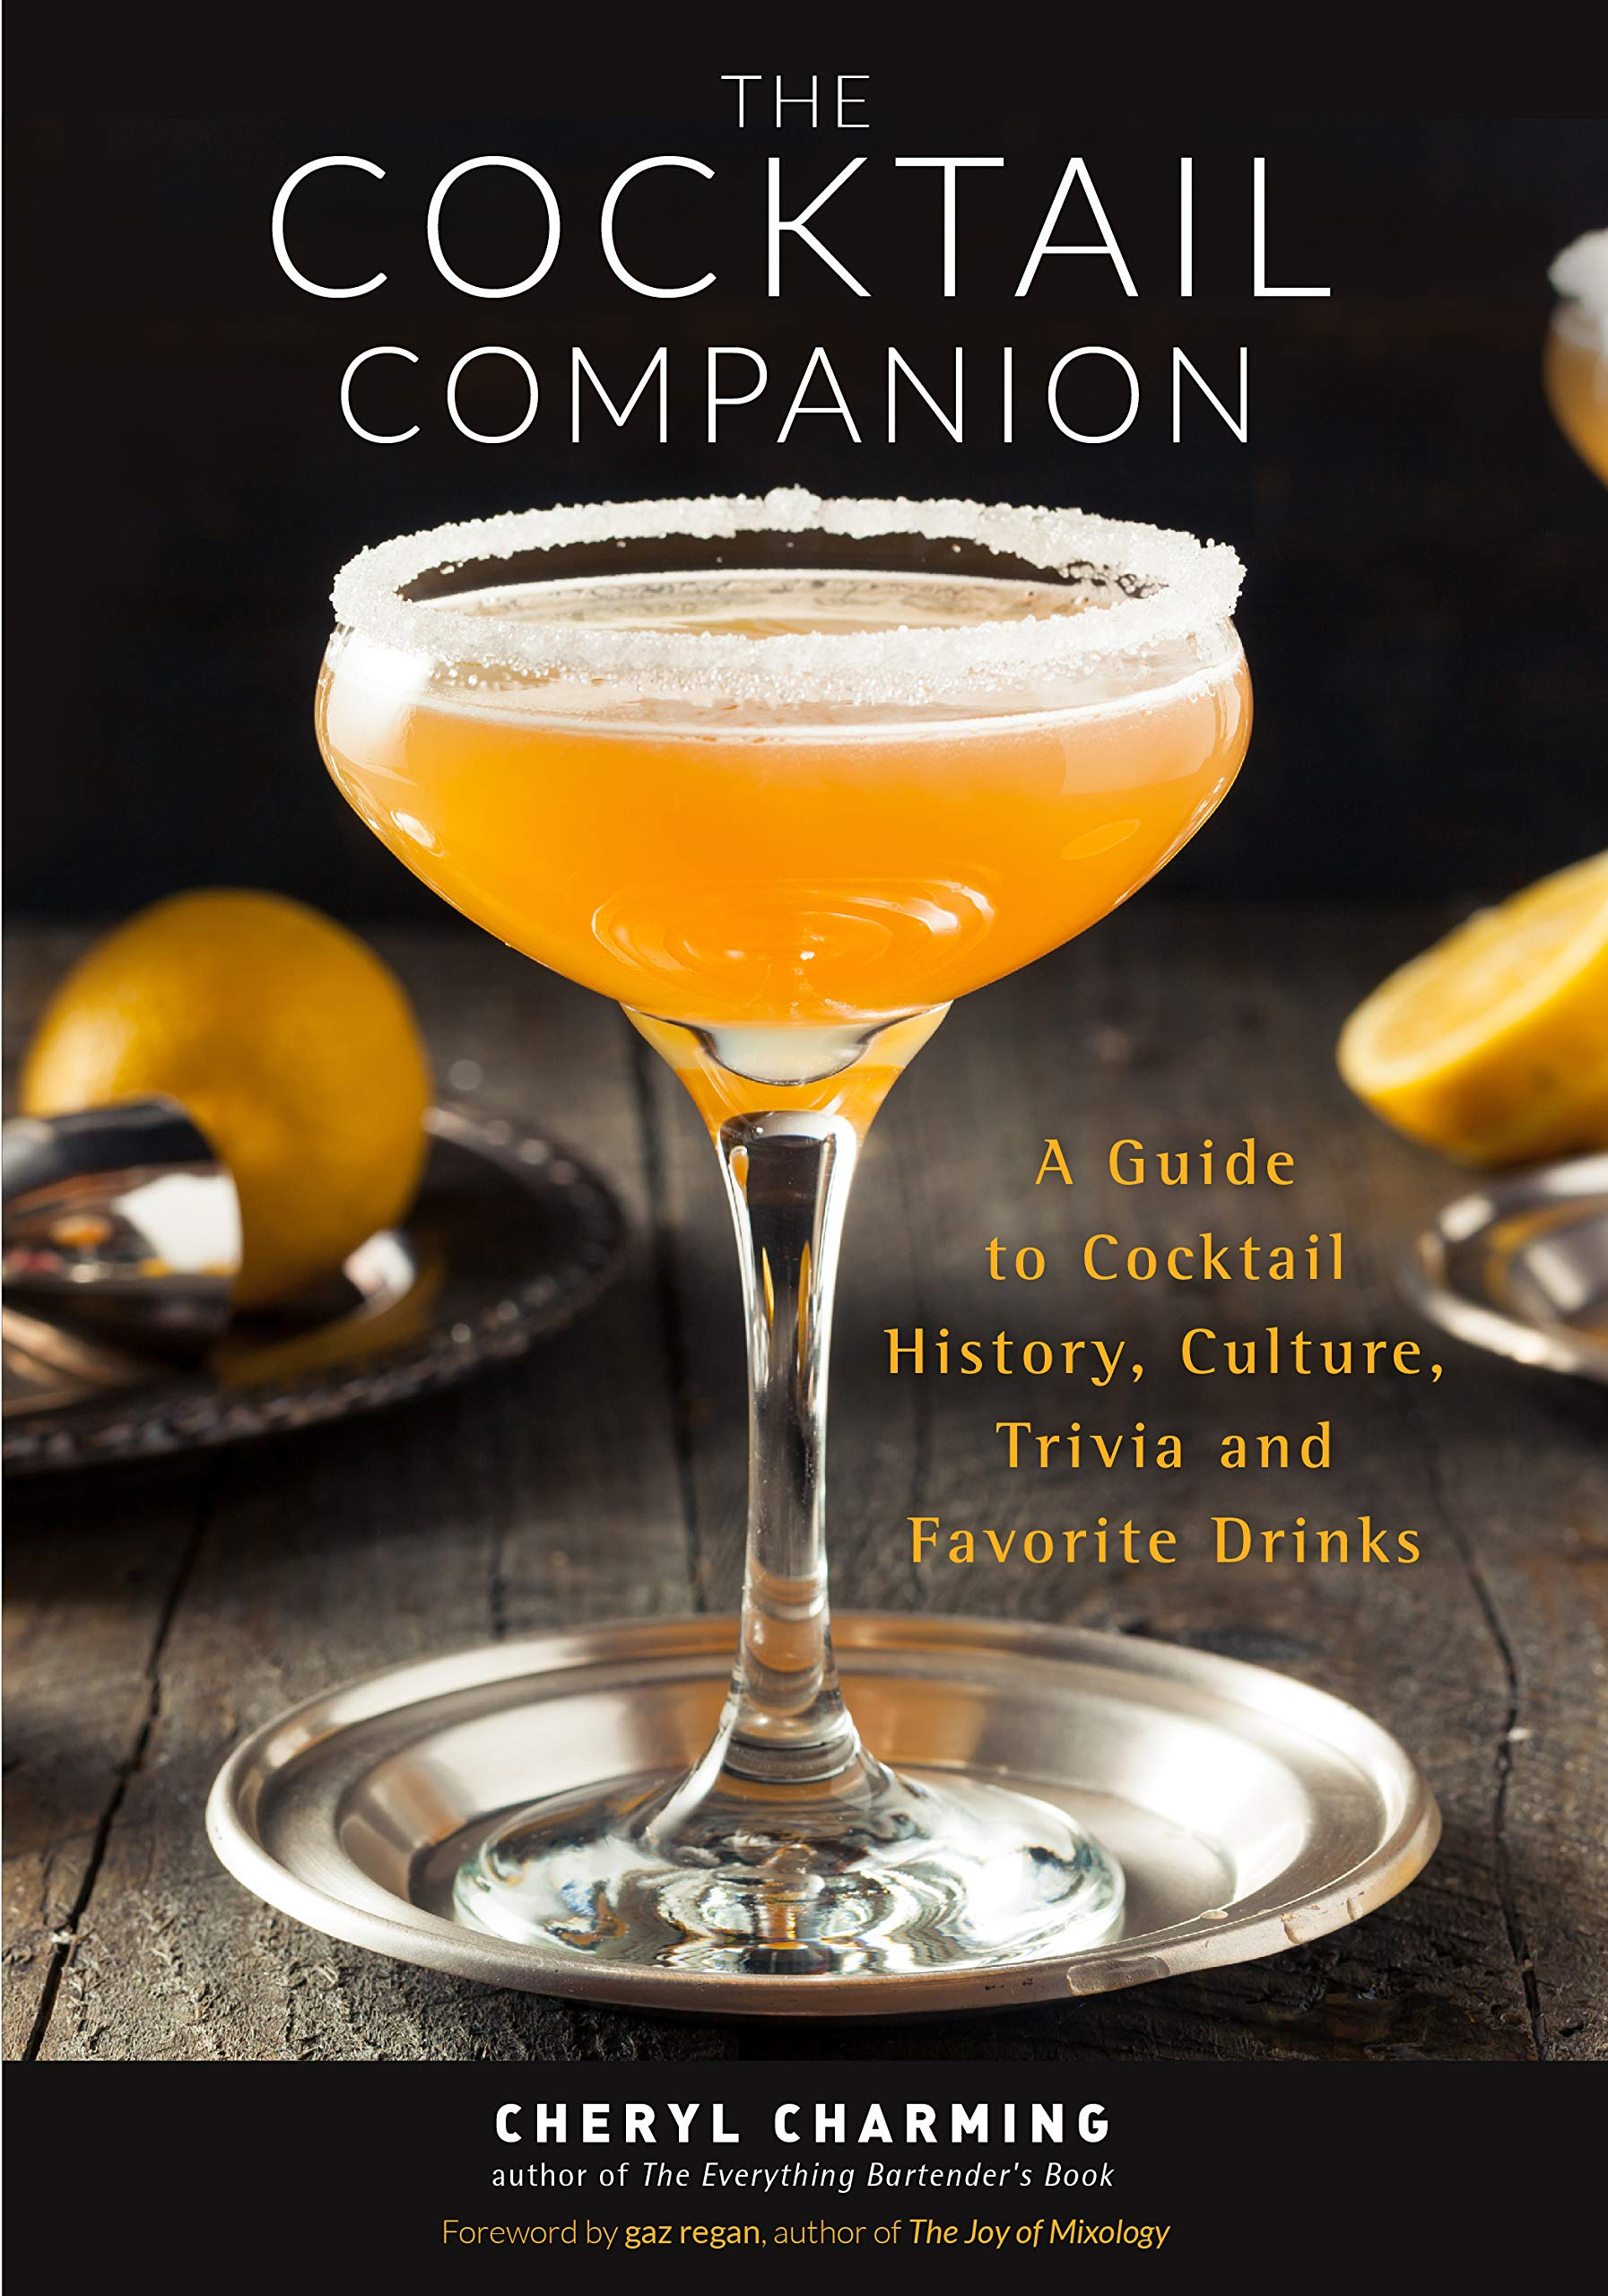 The Cocktail Companion A Guide To Cocktail History Culture Trivia And Favorite Drinks Bartending Book Cocktails Gift Cocktail Recipes History Of Cocktails For Fans Of The Joy Of Mixology Charming Cheryl Regan